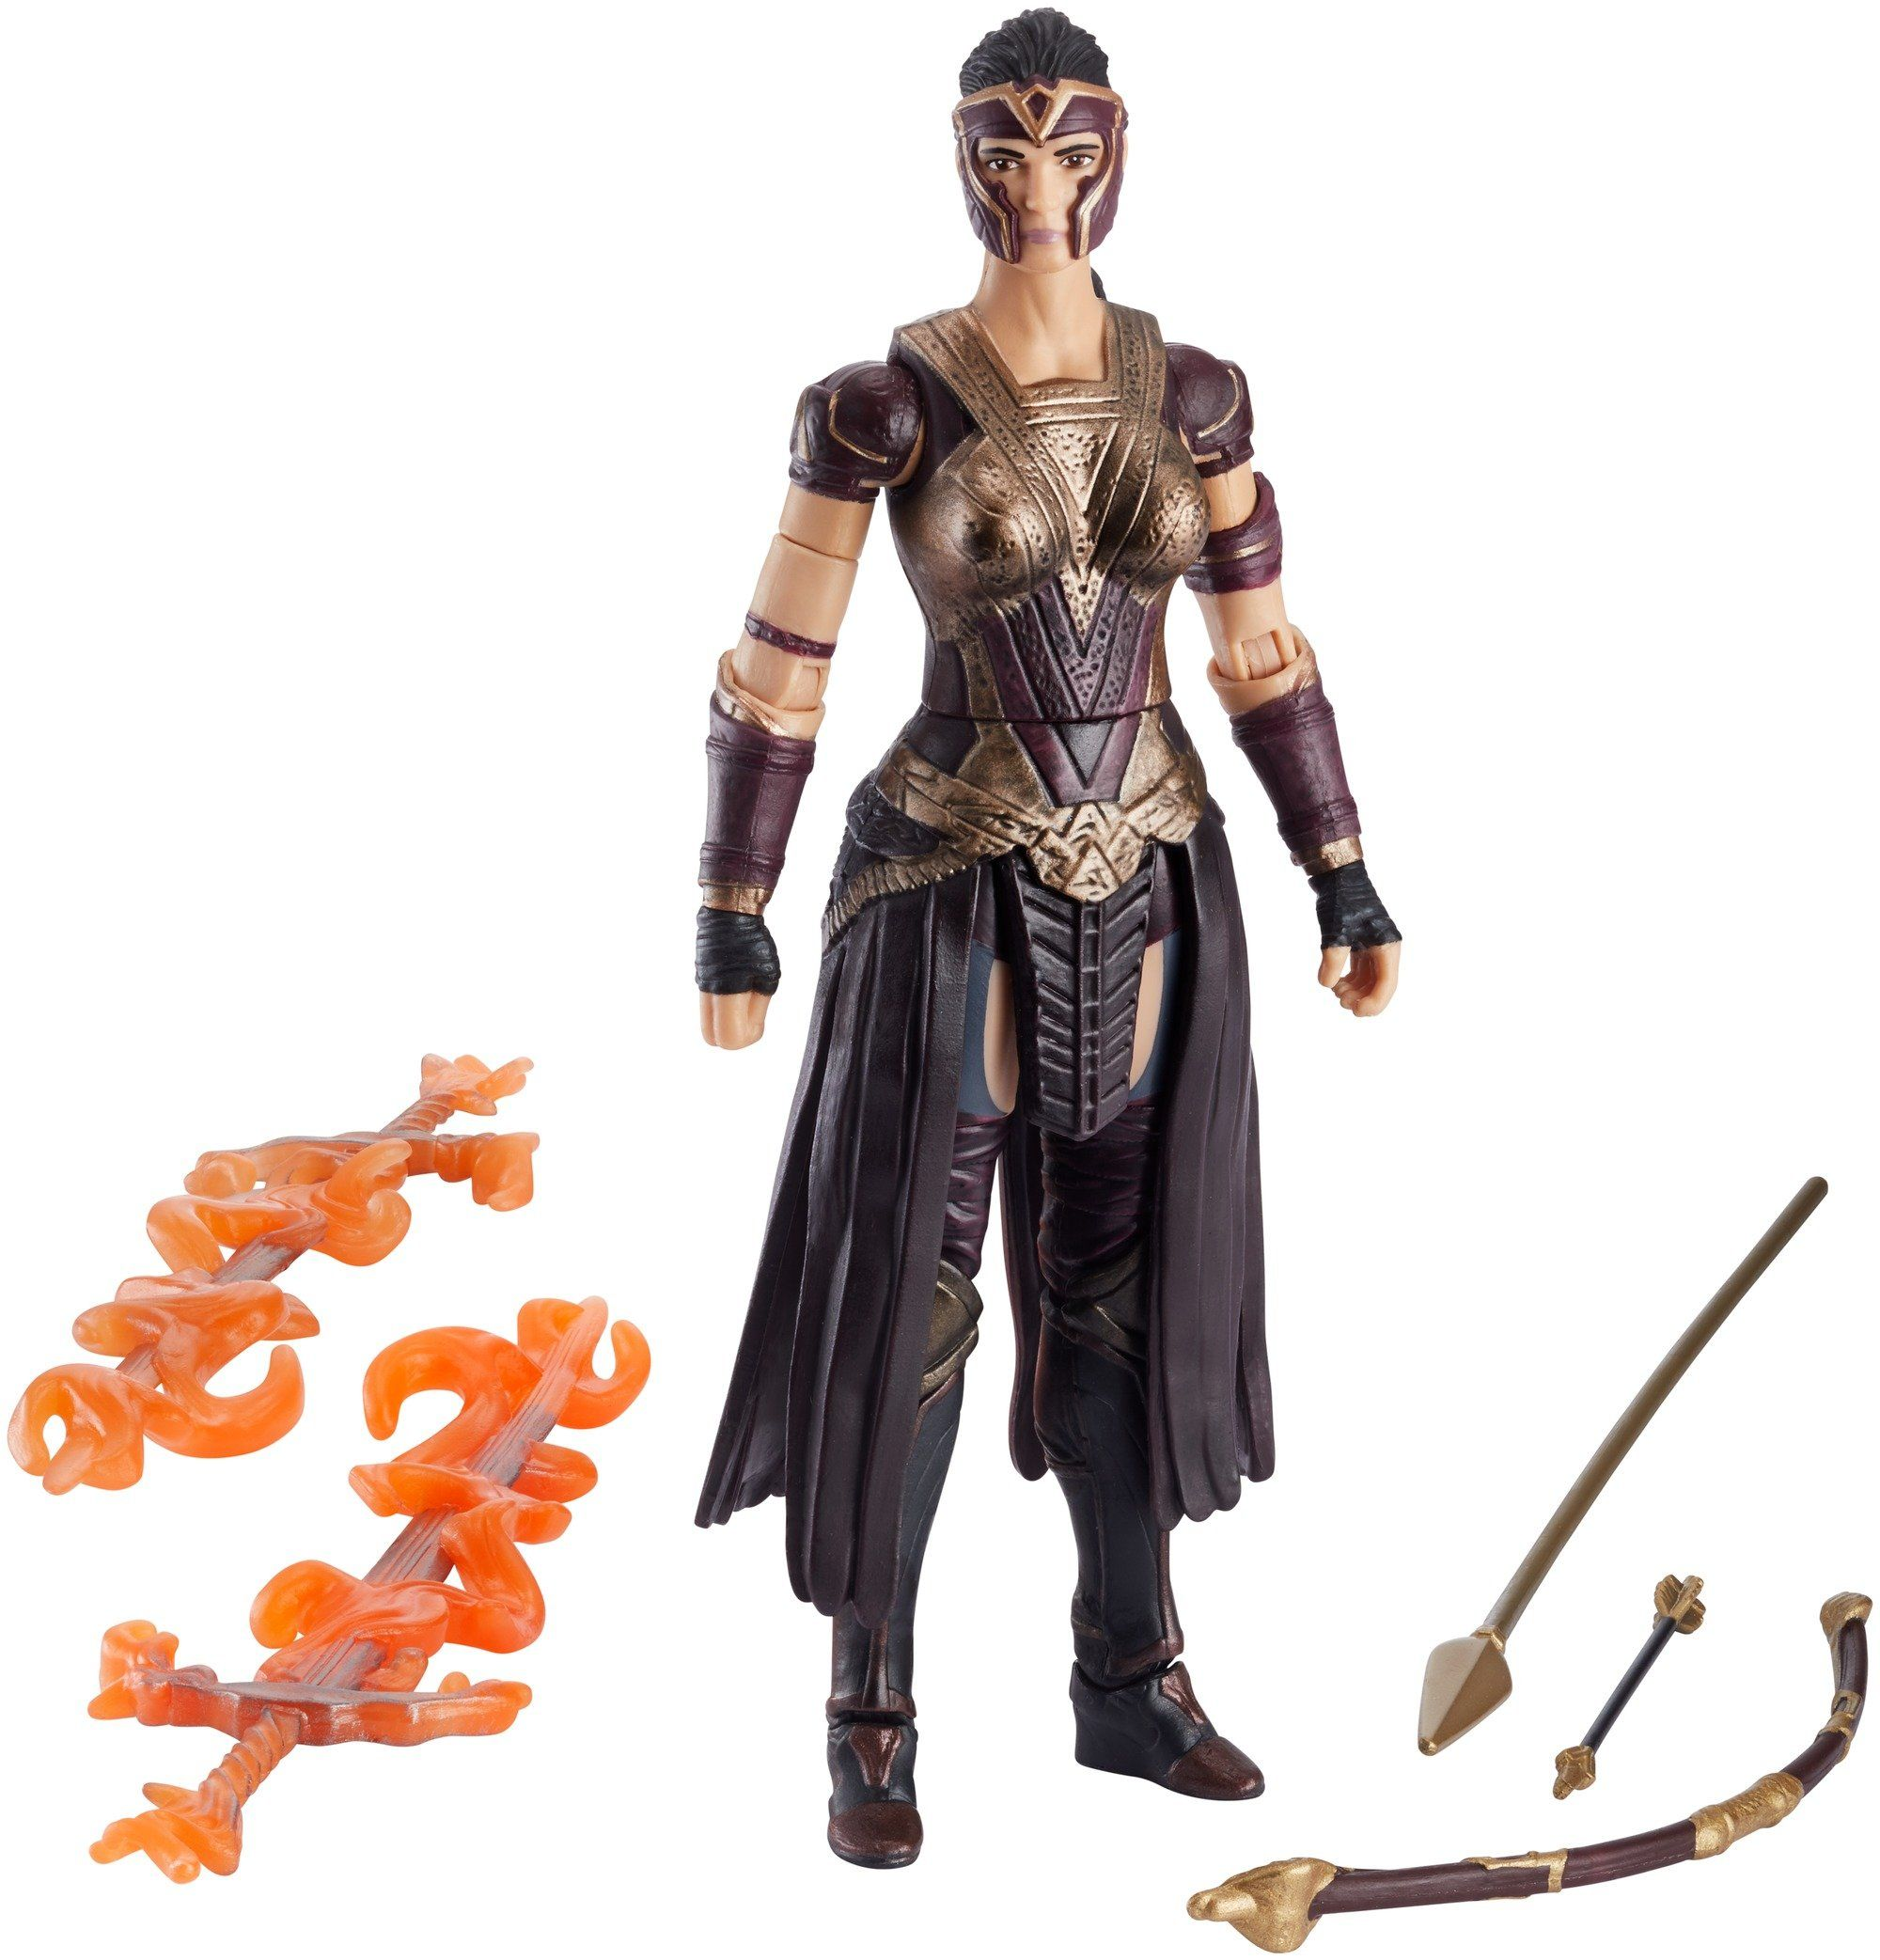 Mattel Dc Comics Multiverse Wonder Woman Menalippe Figure 6 To View Further For This Item Visit The Im Wonder Woman Wonder Woman Movie Wonder Woman Costume